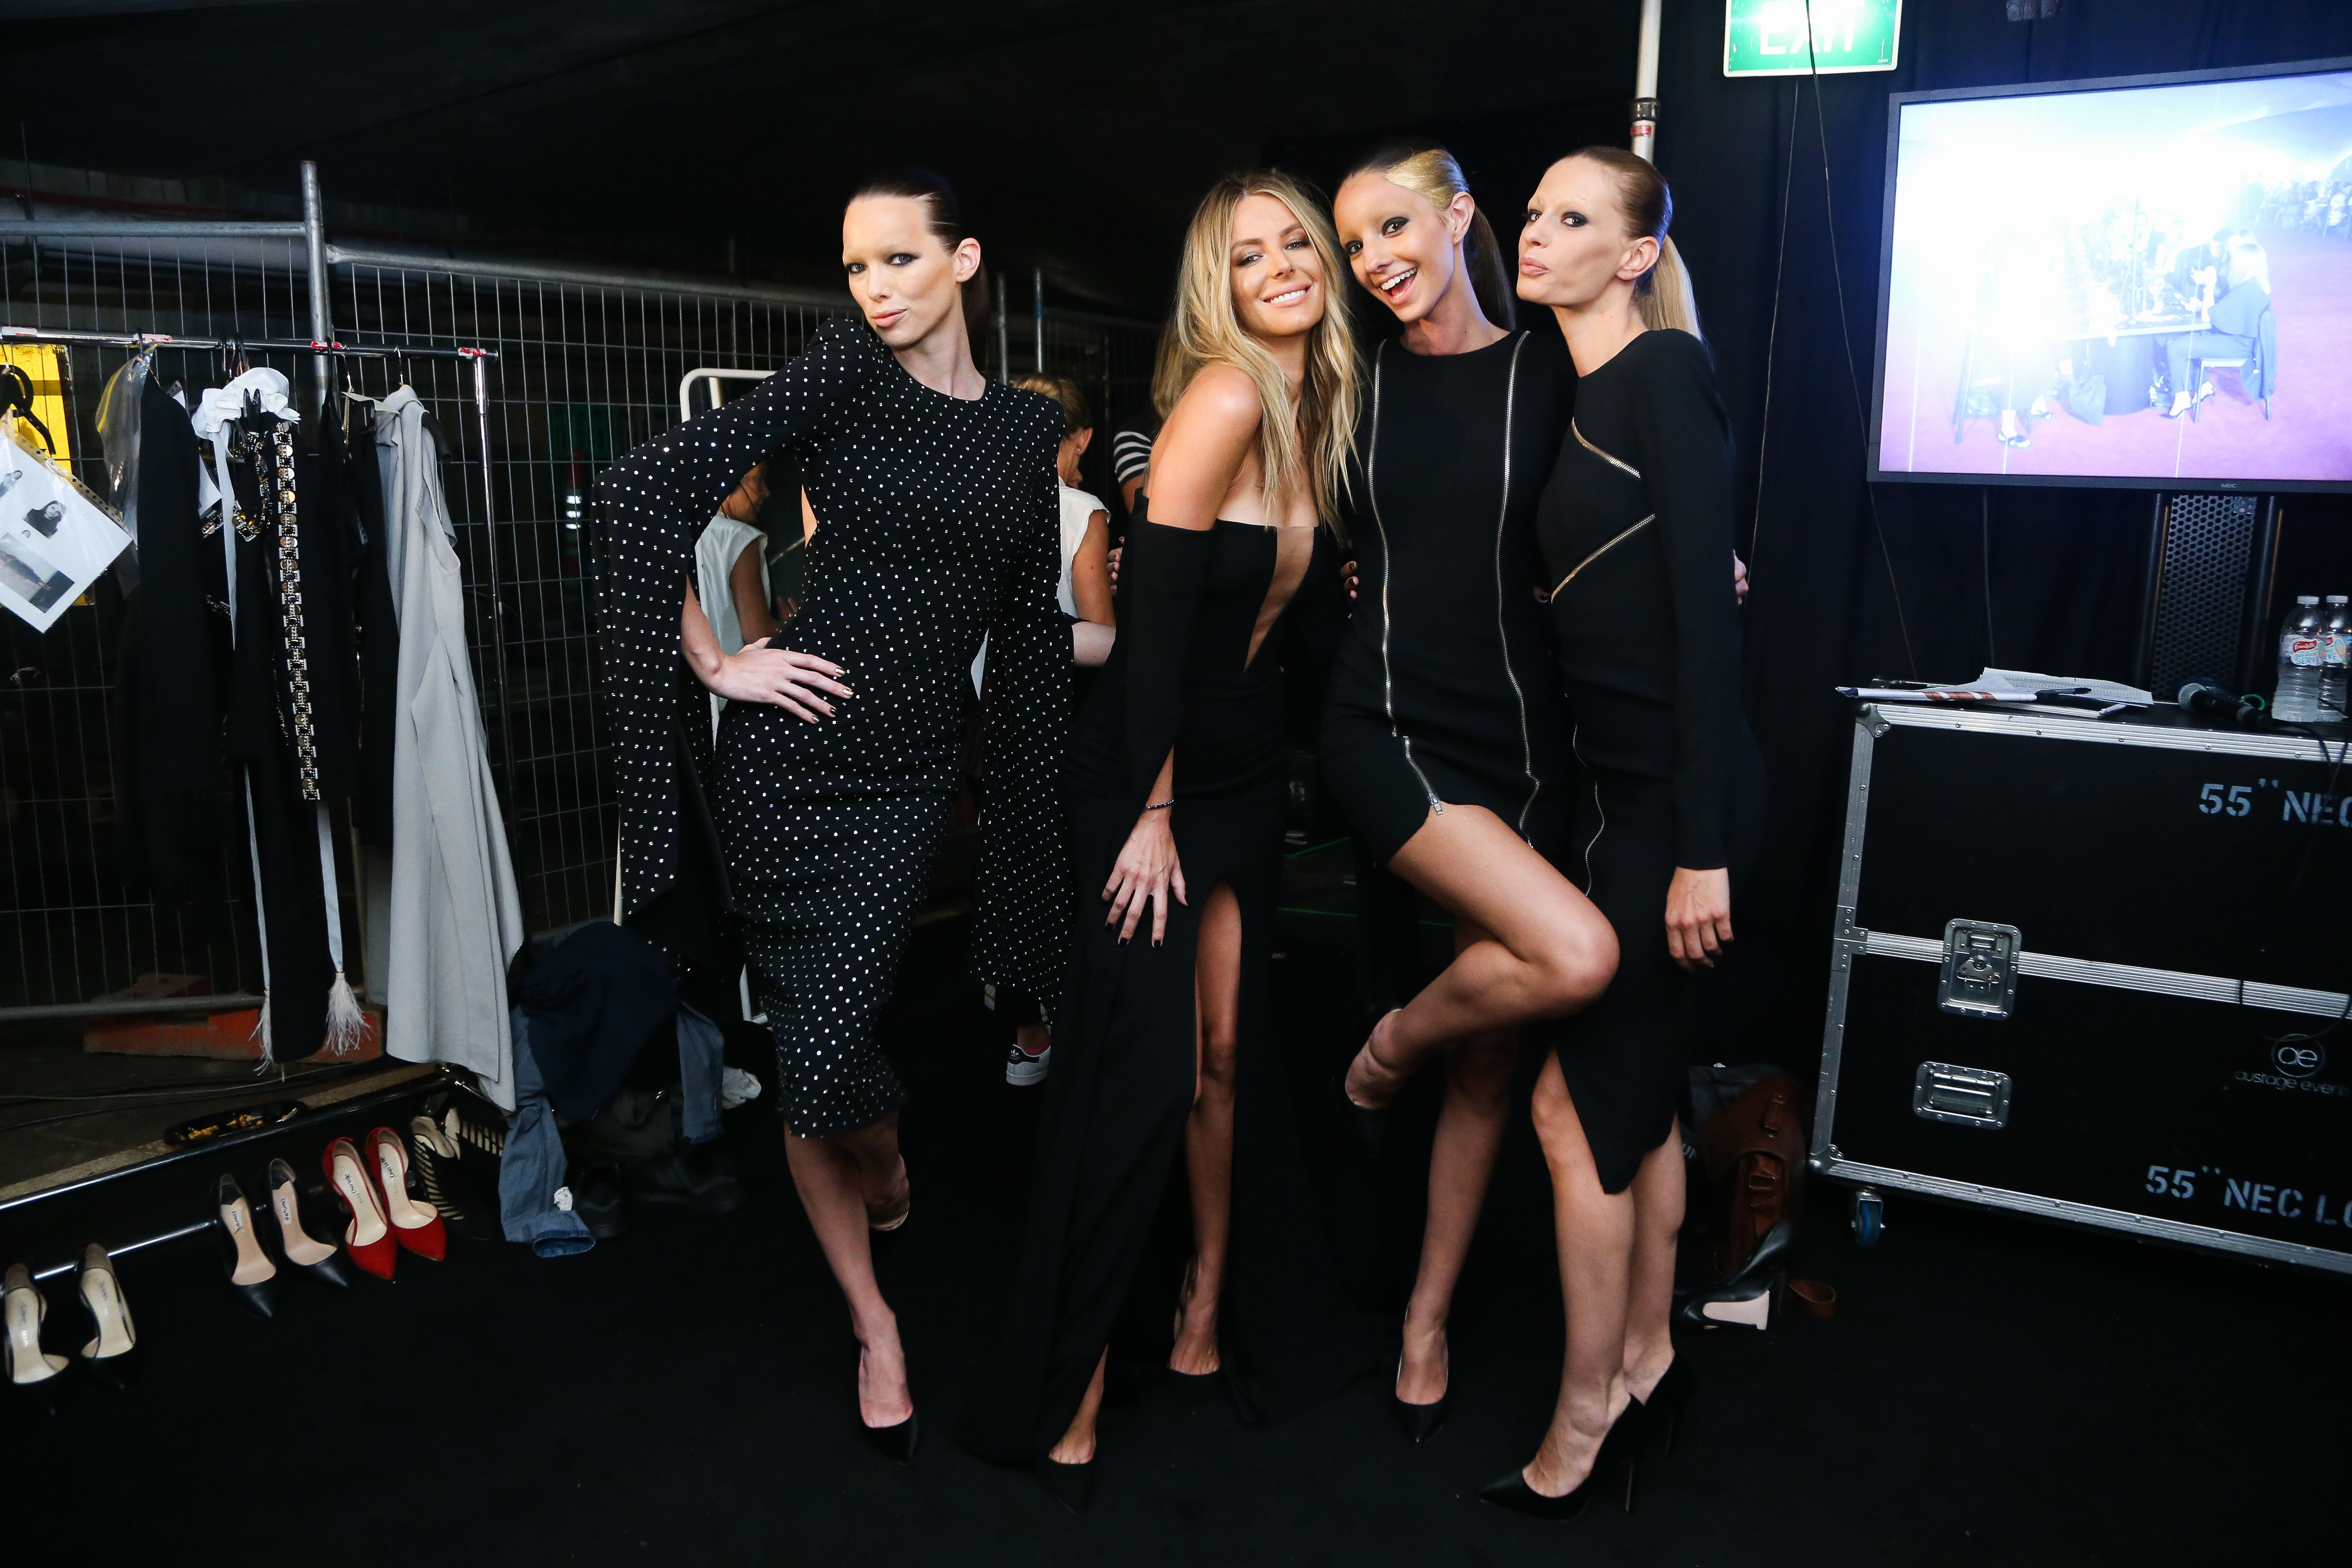 <p>The Myer autumn 2017 fashion show will be talked about for years to come and for all the right reasons.<br> Models stepped out of sleek black Tesla cars, thundering down the runway in 70s inspired silhouettes by Alex Perry, Yeojin Bae, Roksanda, M.J. Bale, Kate Sylvester, Self Portrait, Aje, and Misha Collection.<br> The fashion was edgy, energetic and a touch rebellious.<br> Following dinner, the fashion story continued with a second act that showcased more feminine silhouettes and pops of colour.<br> Click through our gallery of shots to see just how impressive this collection was and also, the shapes and shades you'll be wearing this autumn/winter.</p>